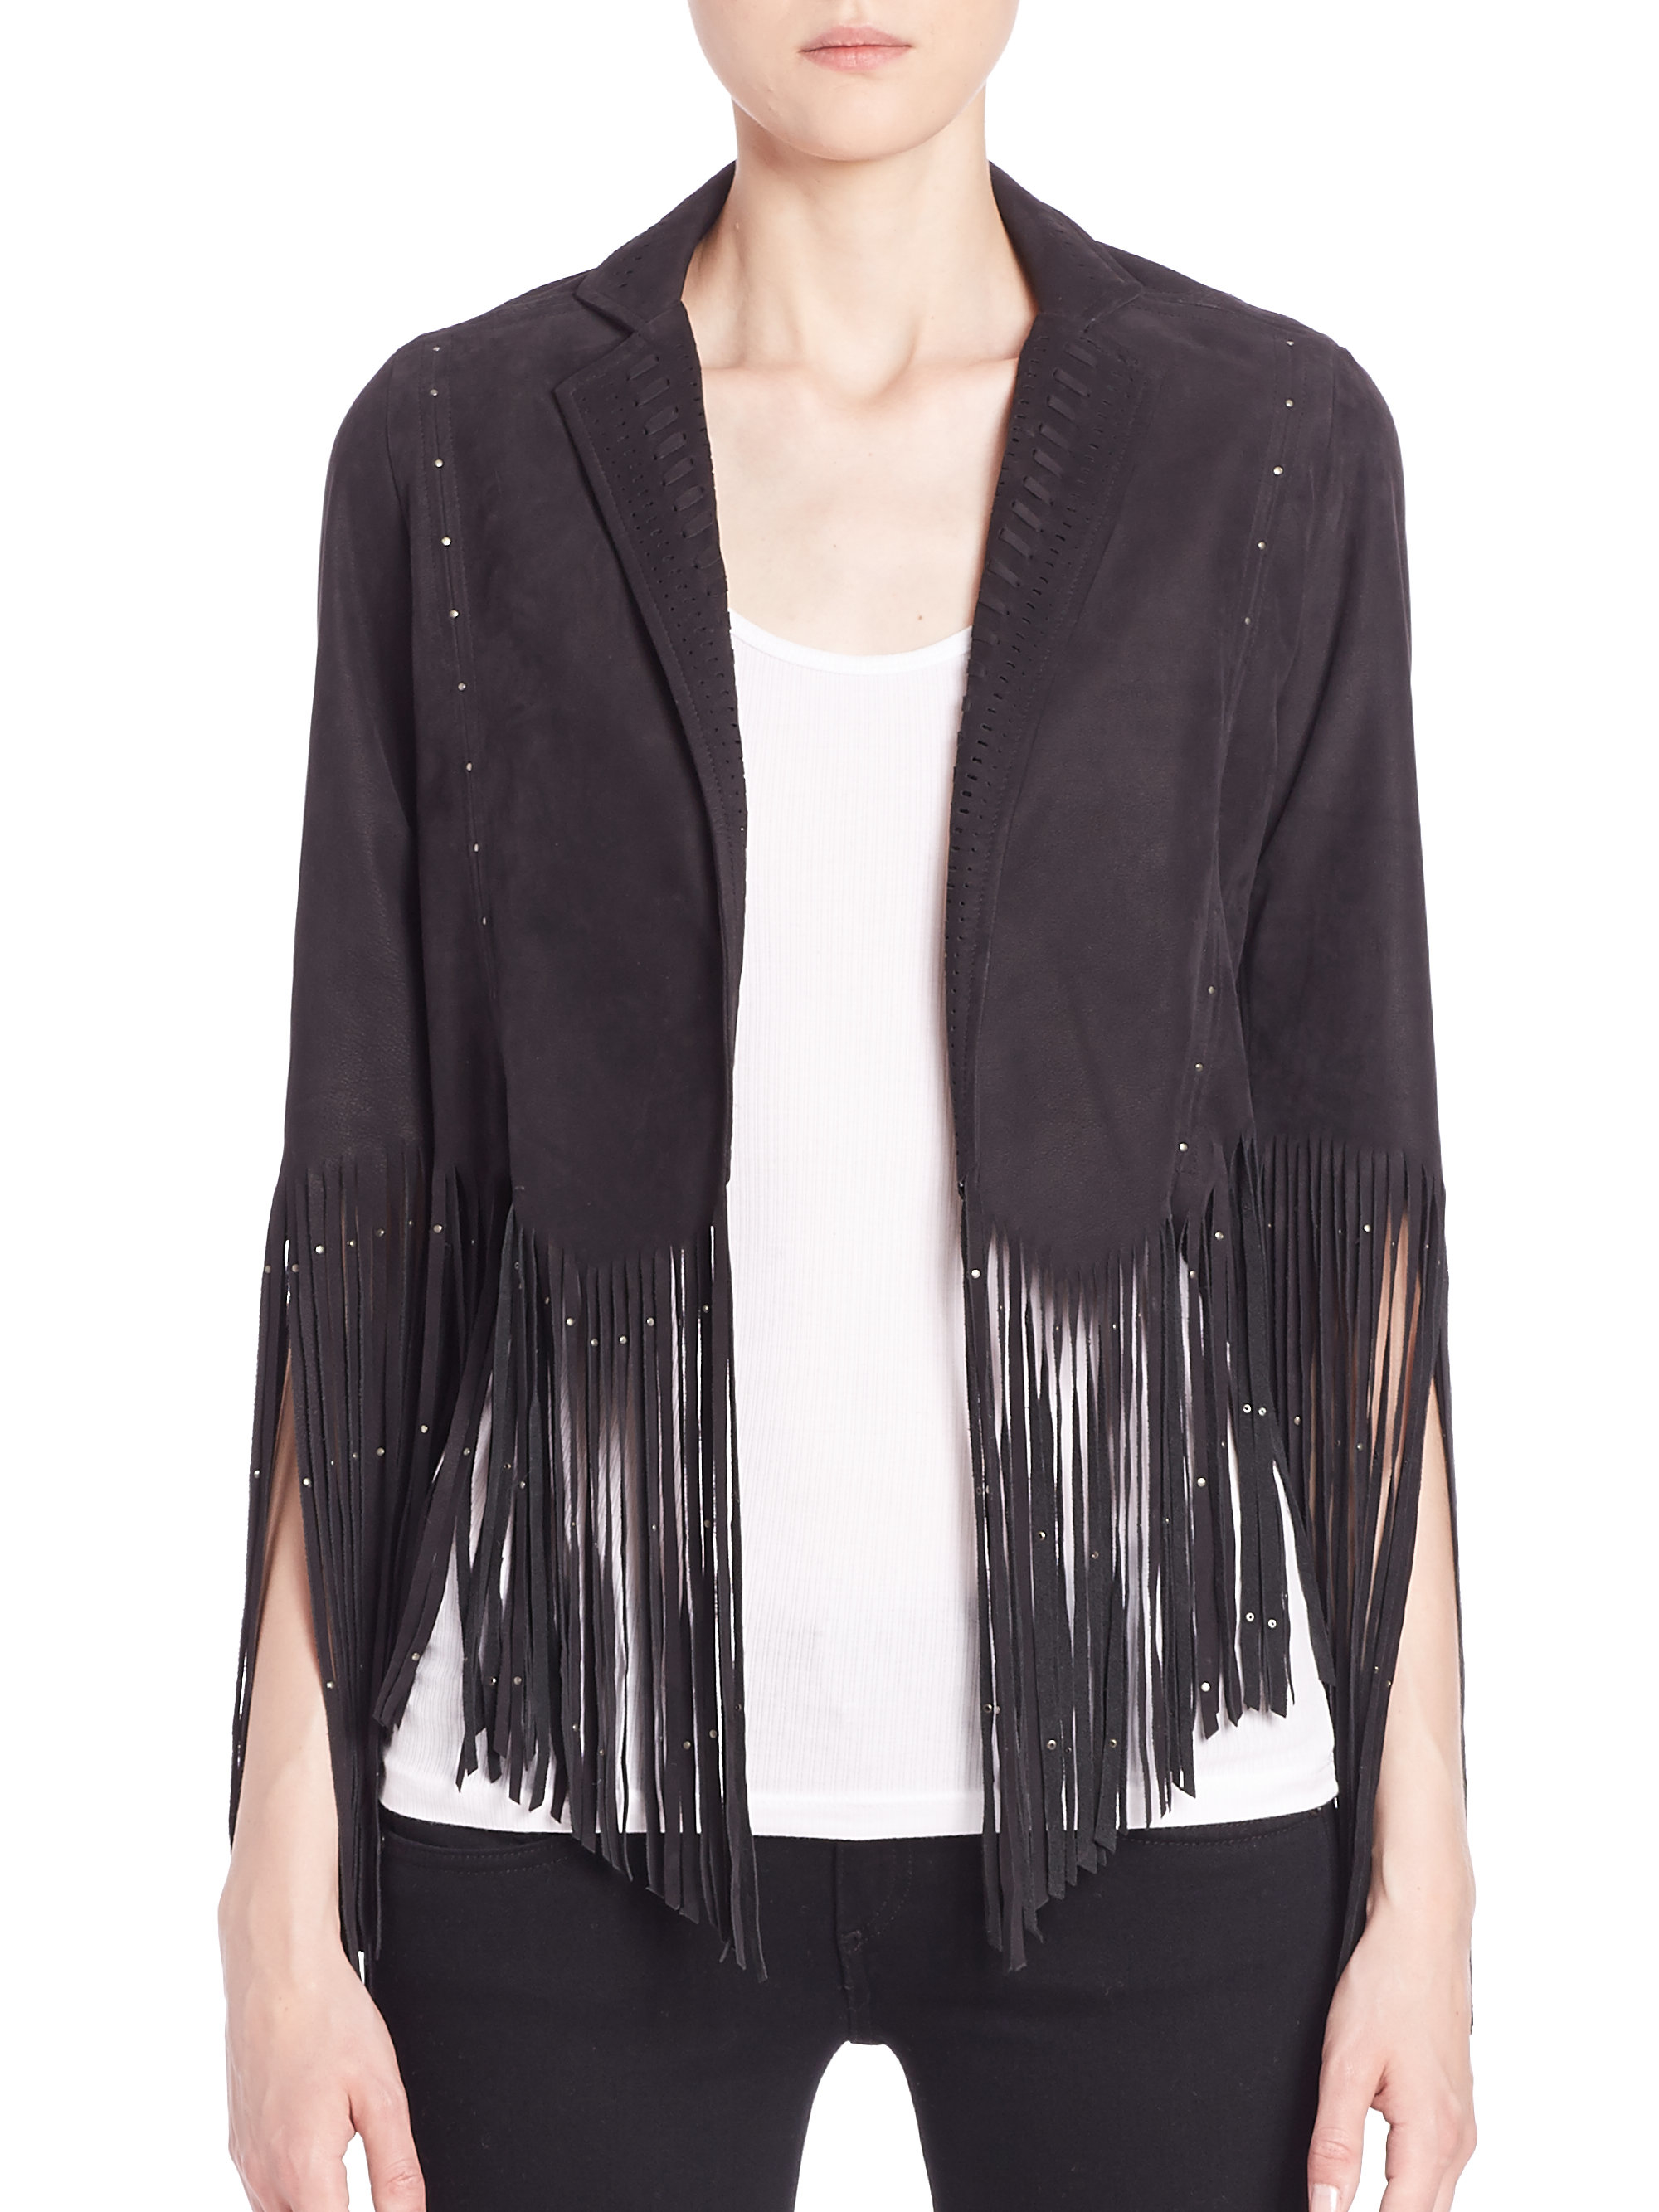 Rebecca Minkoff Fringe Trim Jacket Sale Real Shopping Online Free Shipping Cheap Popular Exclusive For Sale Buy Cheap Free Shipping x8d2iiH